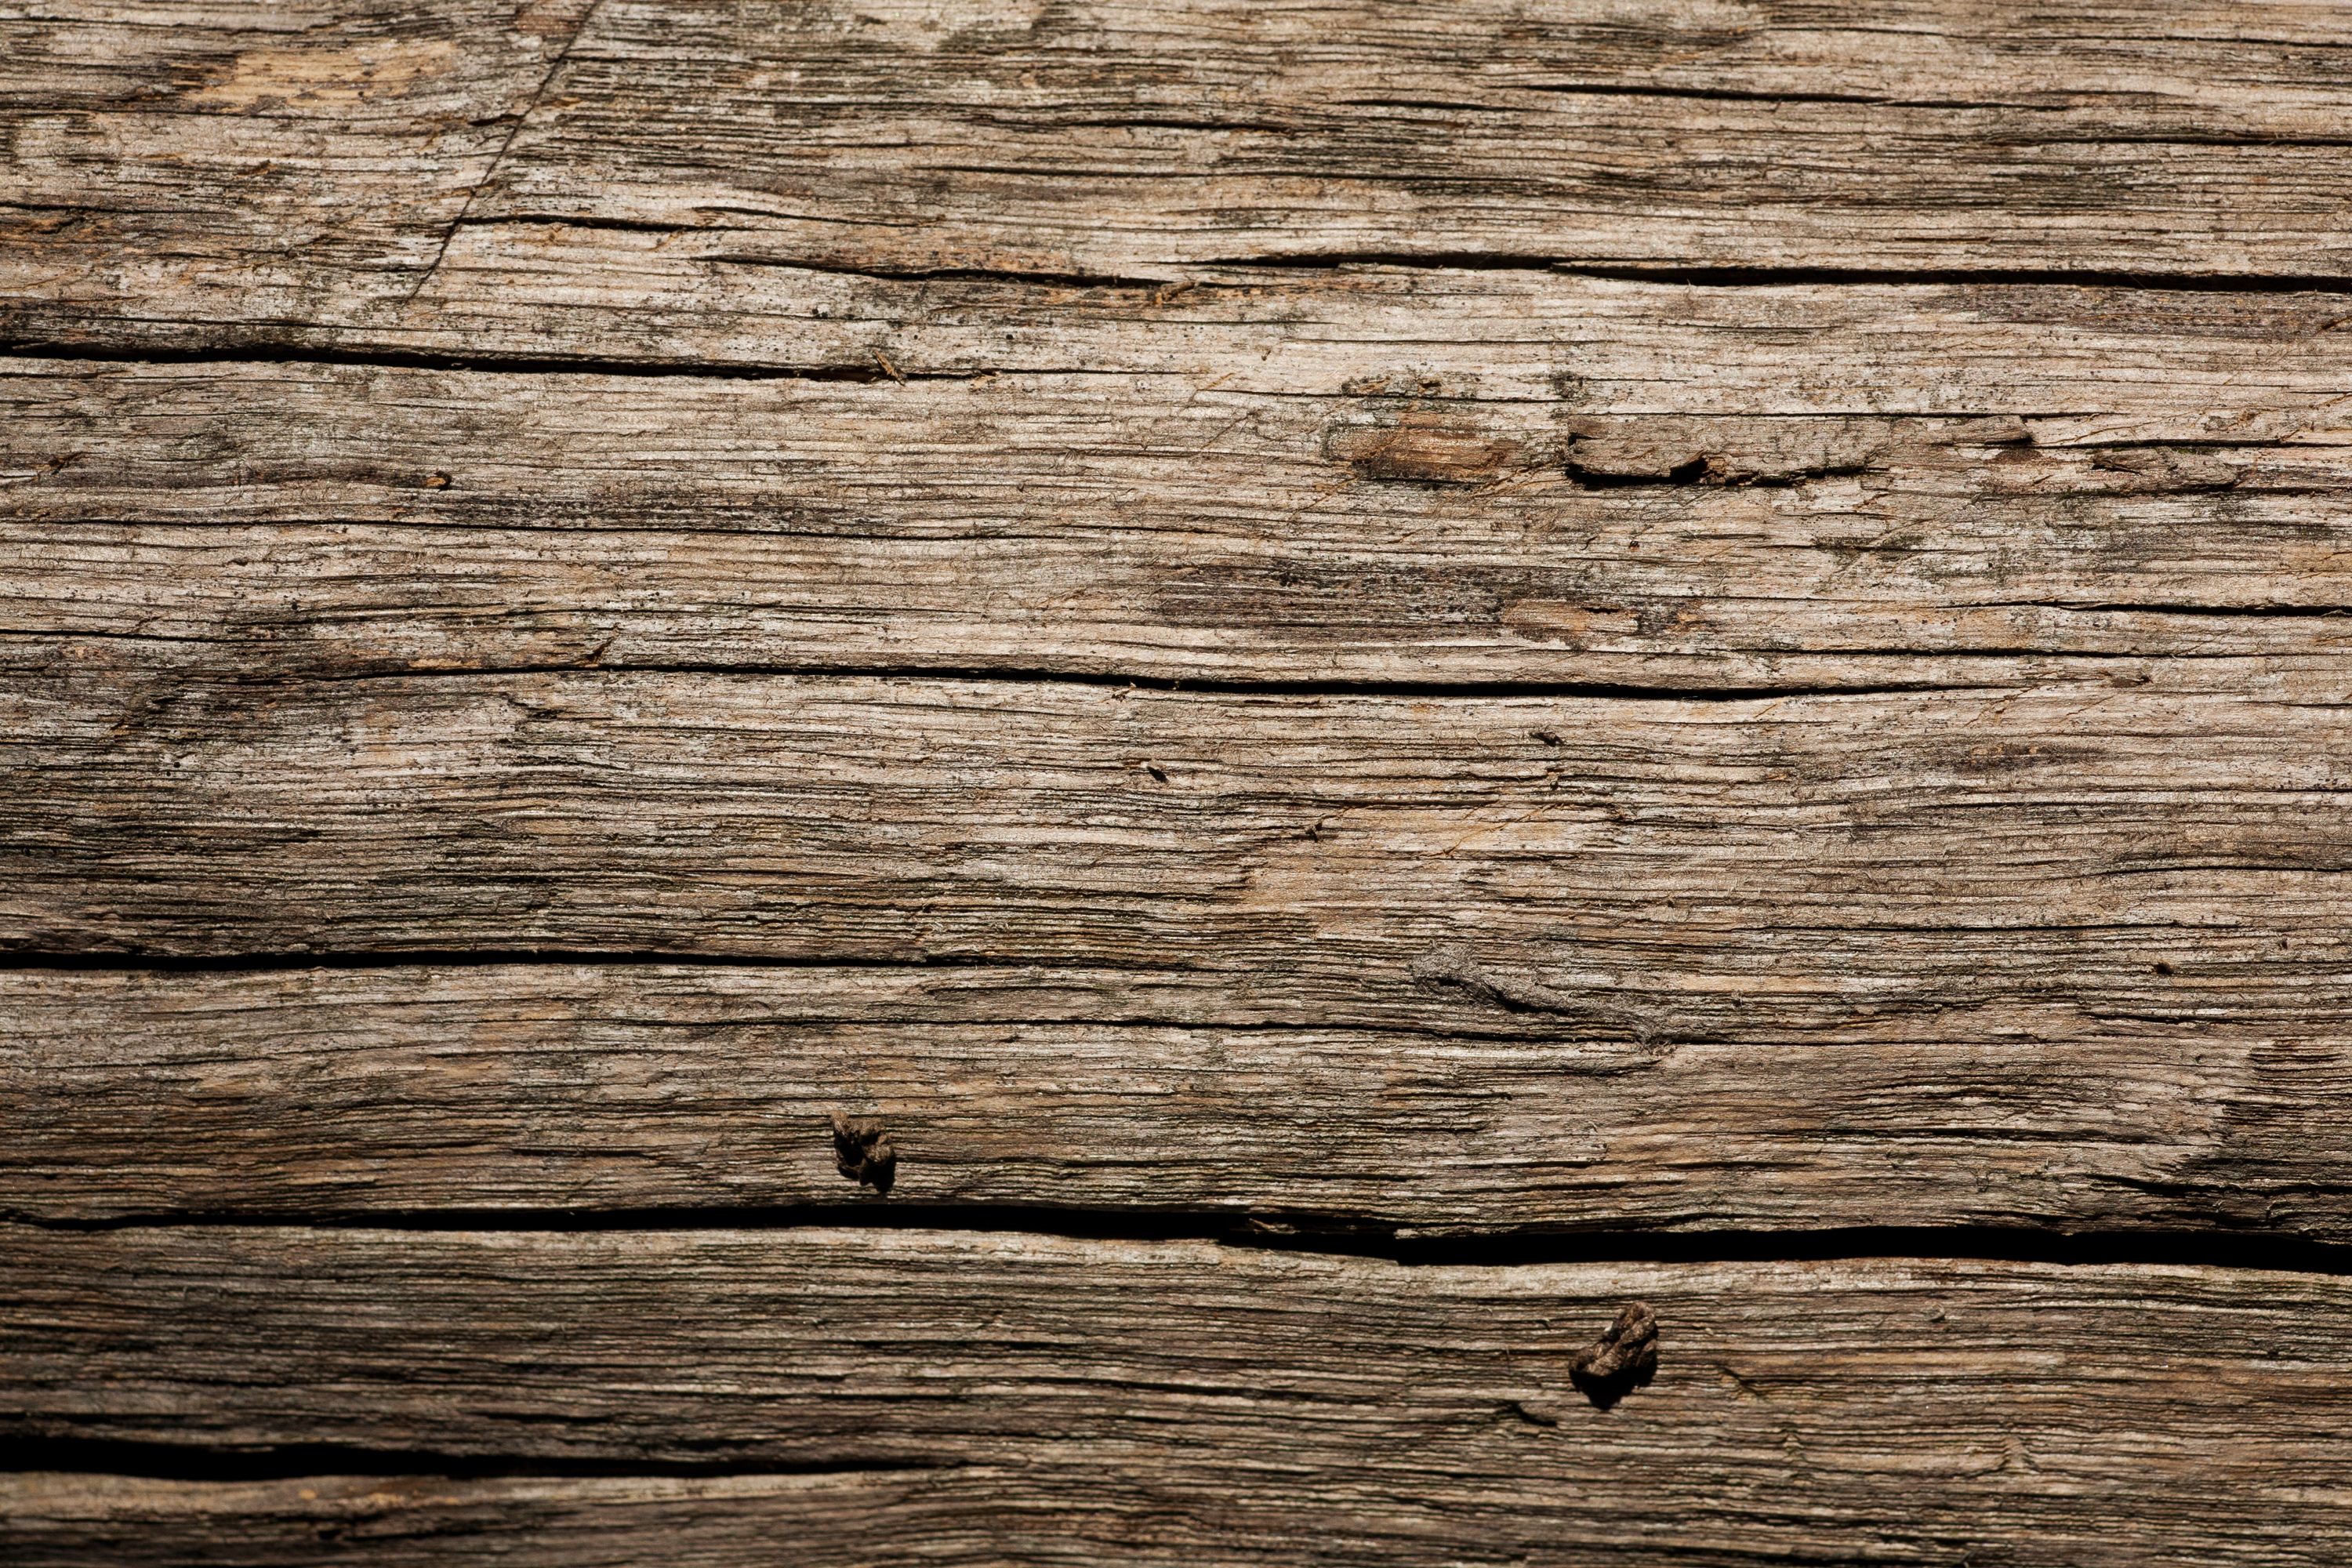 Old wood texture clipart freeuse stock Dry Old Wood Texture freeuse stock